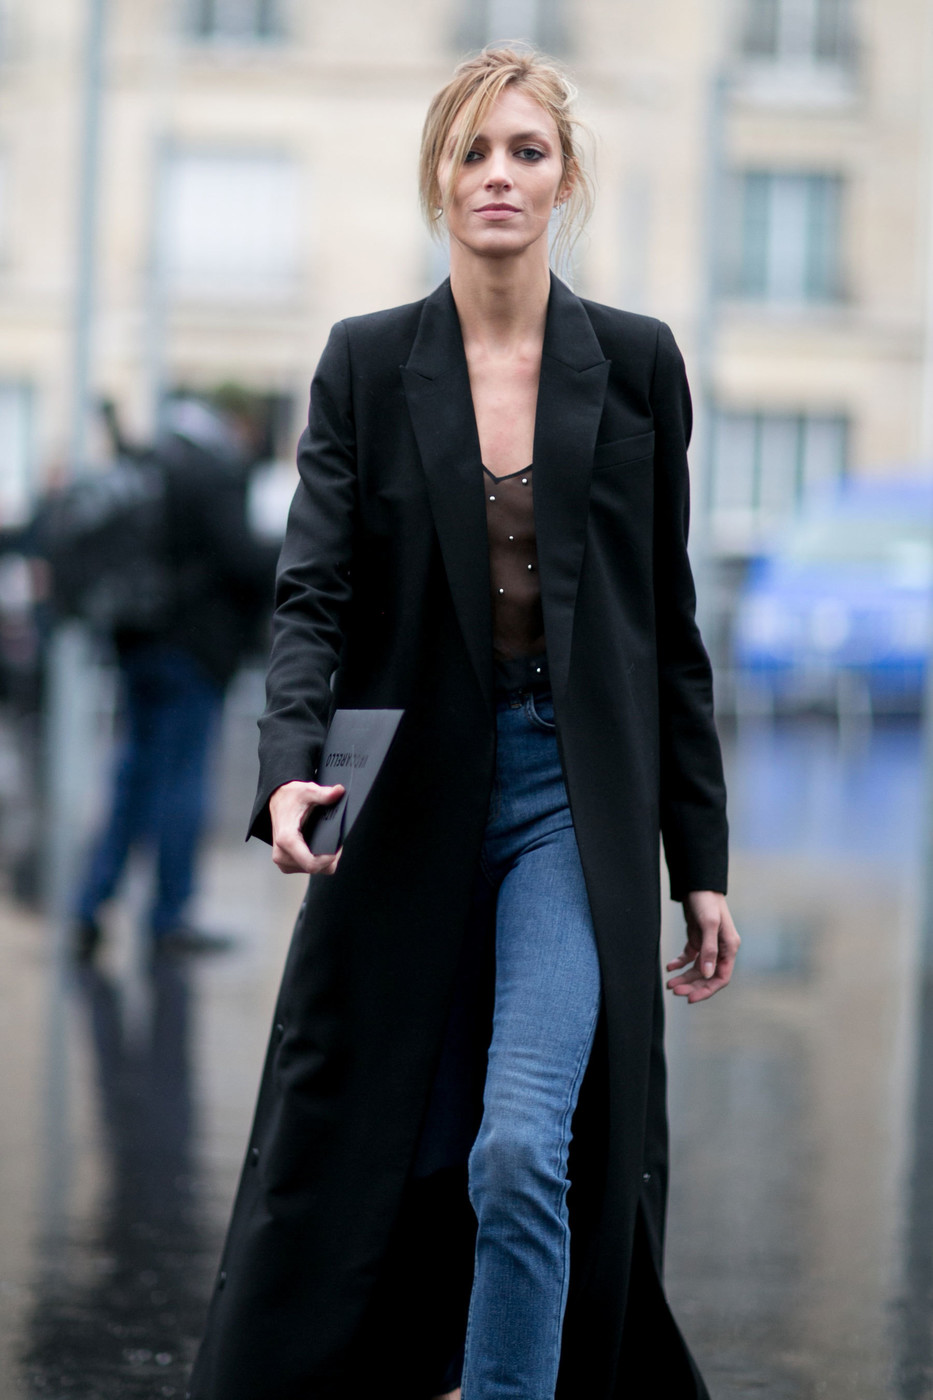 Anja Rubik's Chic Style at Paris Fashion Week Autumn/Winter 2016